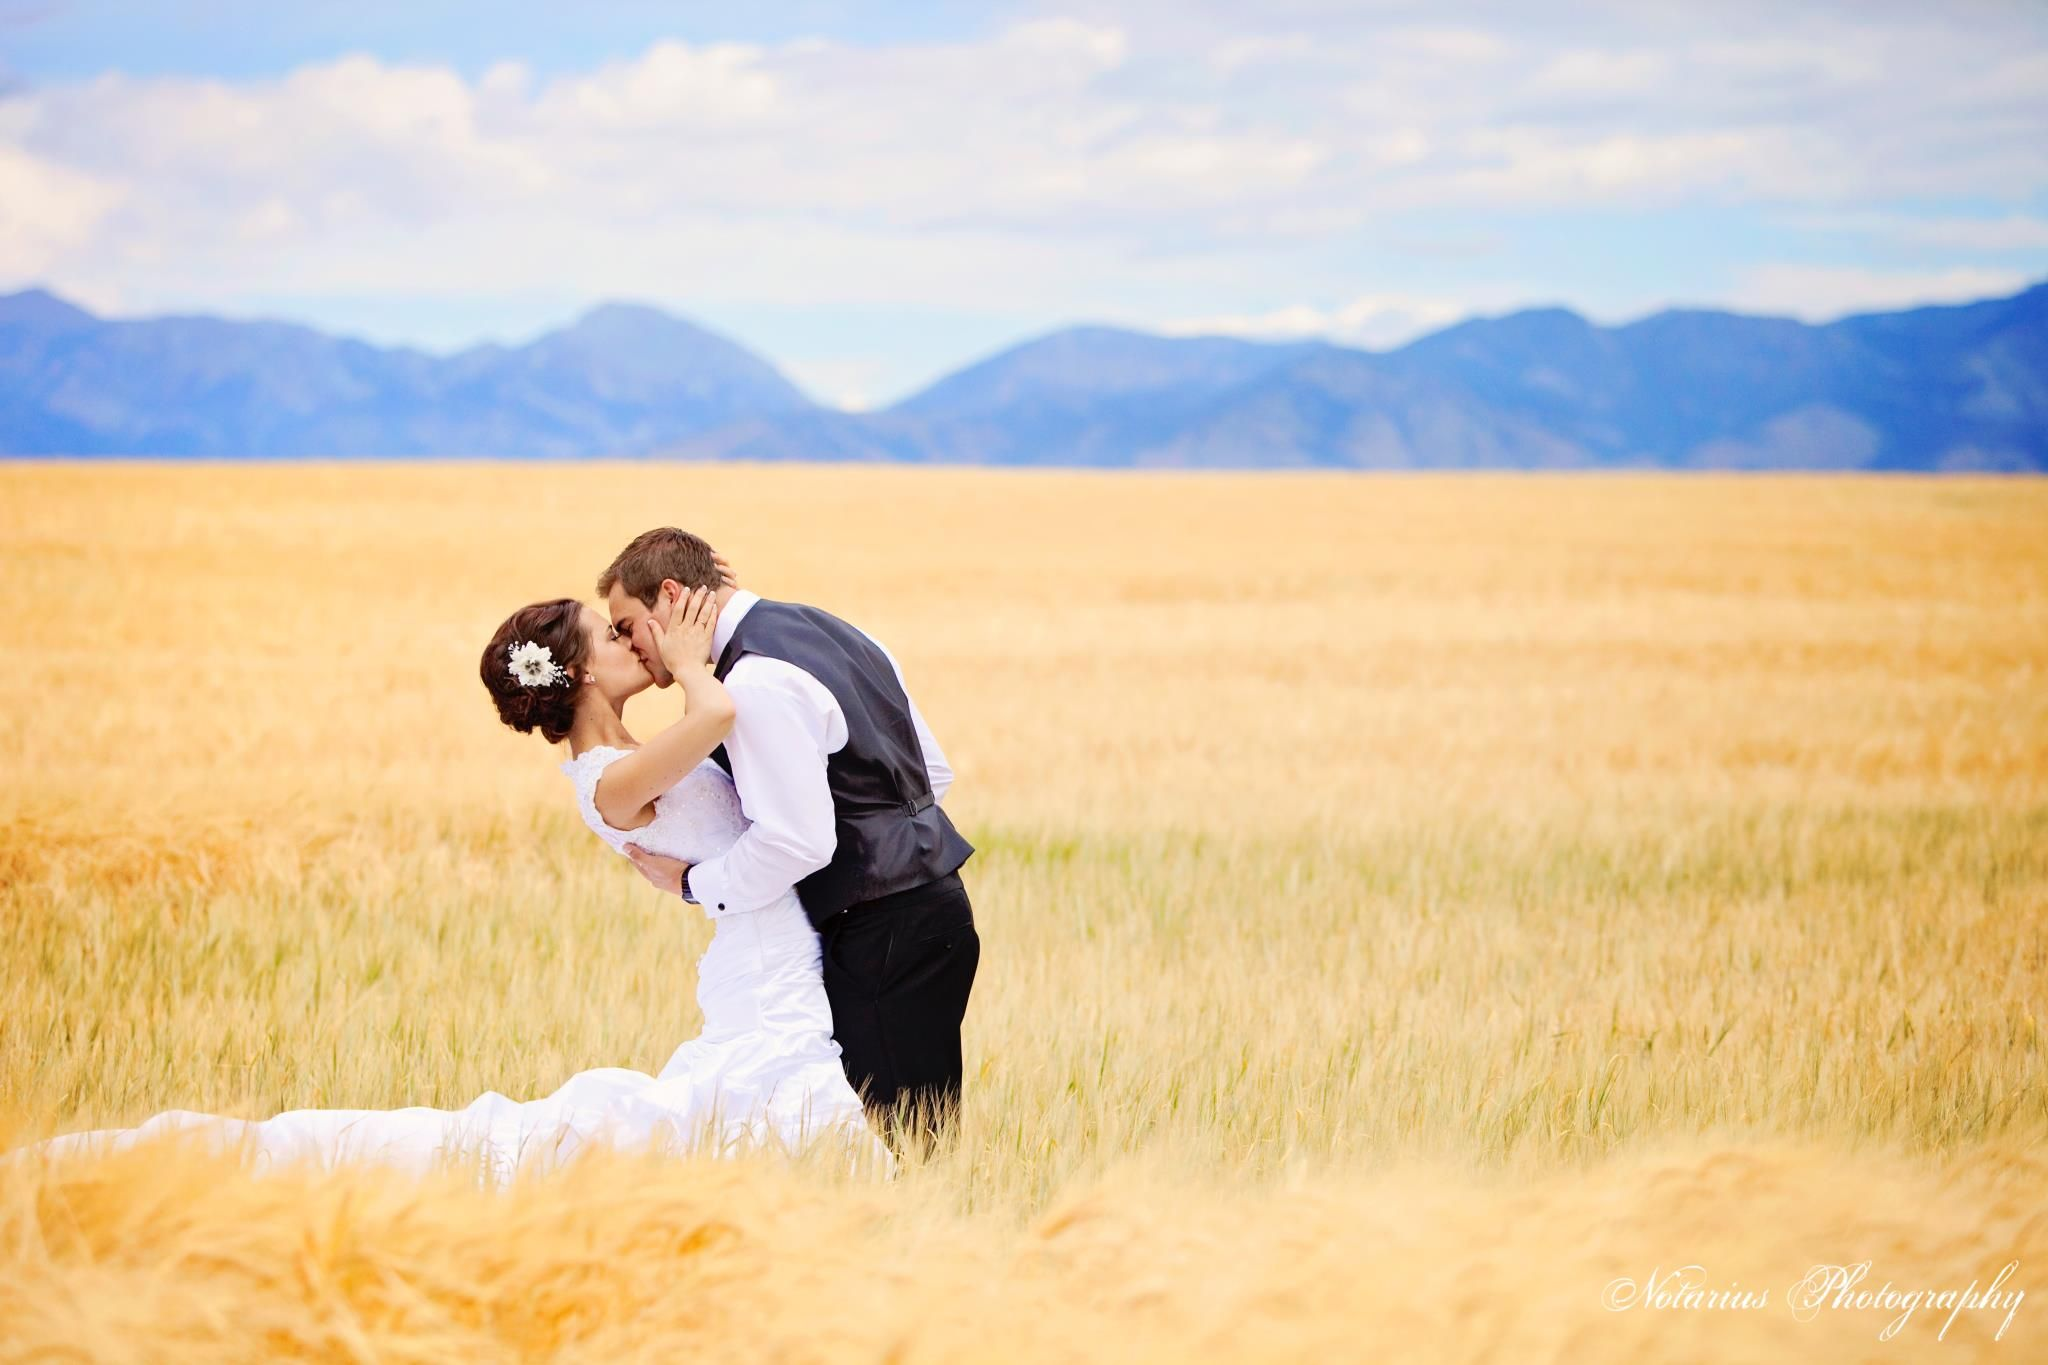 Wedding Photography: Love this picture. WOW.